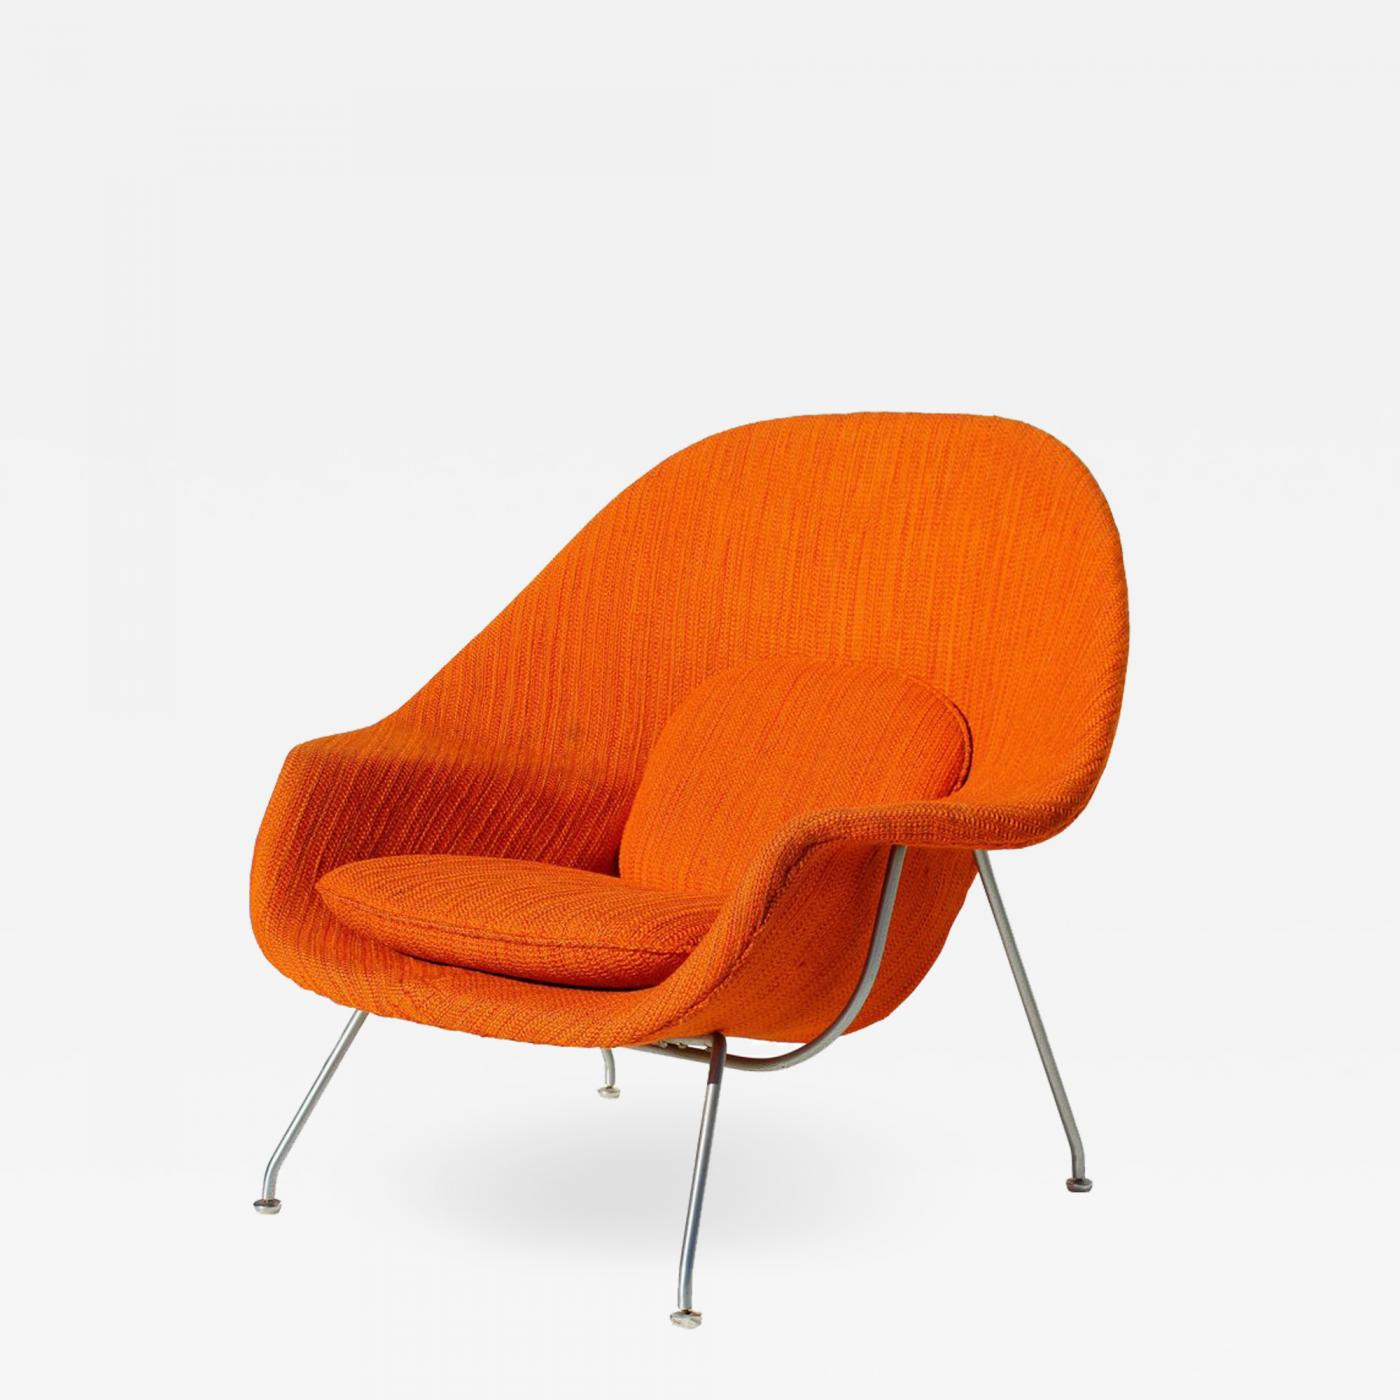 Chair Saarinen Eero Saarinen Eero Saarinen Womb Chair With Original Upholstery And Steel Frame